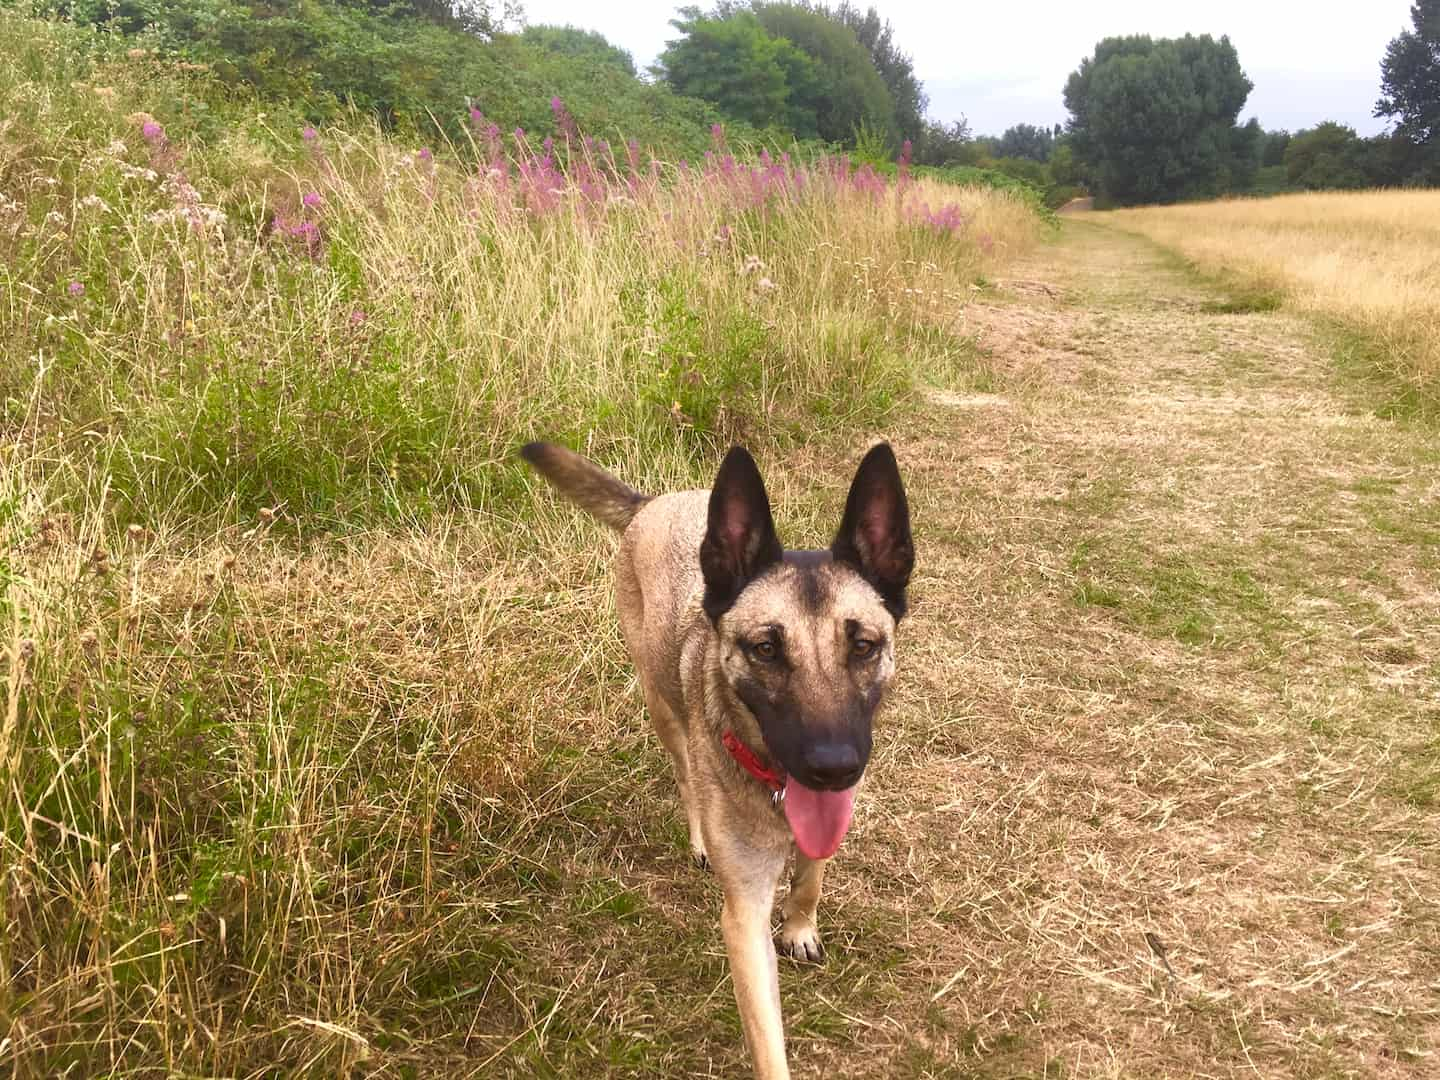 My Dog Friendly London By Lyra the Malinois - Dog Friendly Dalston and Hackney 26